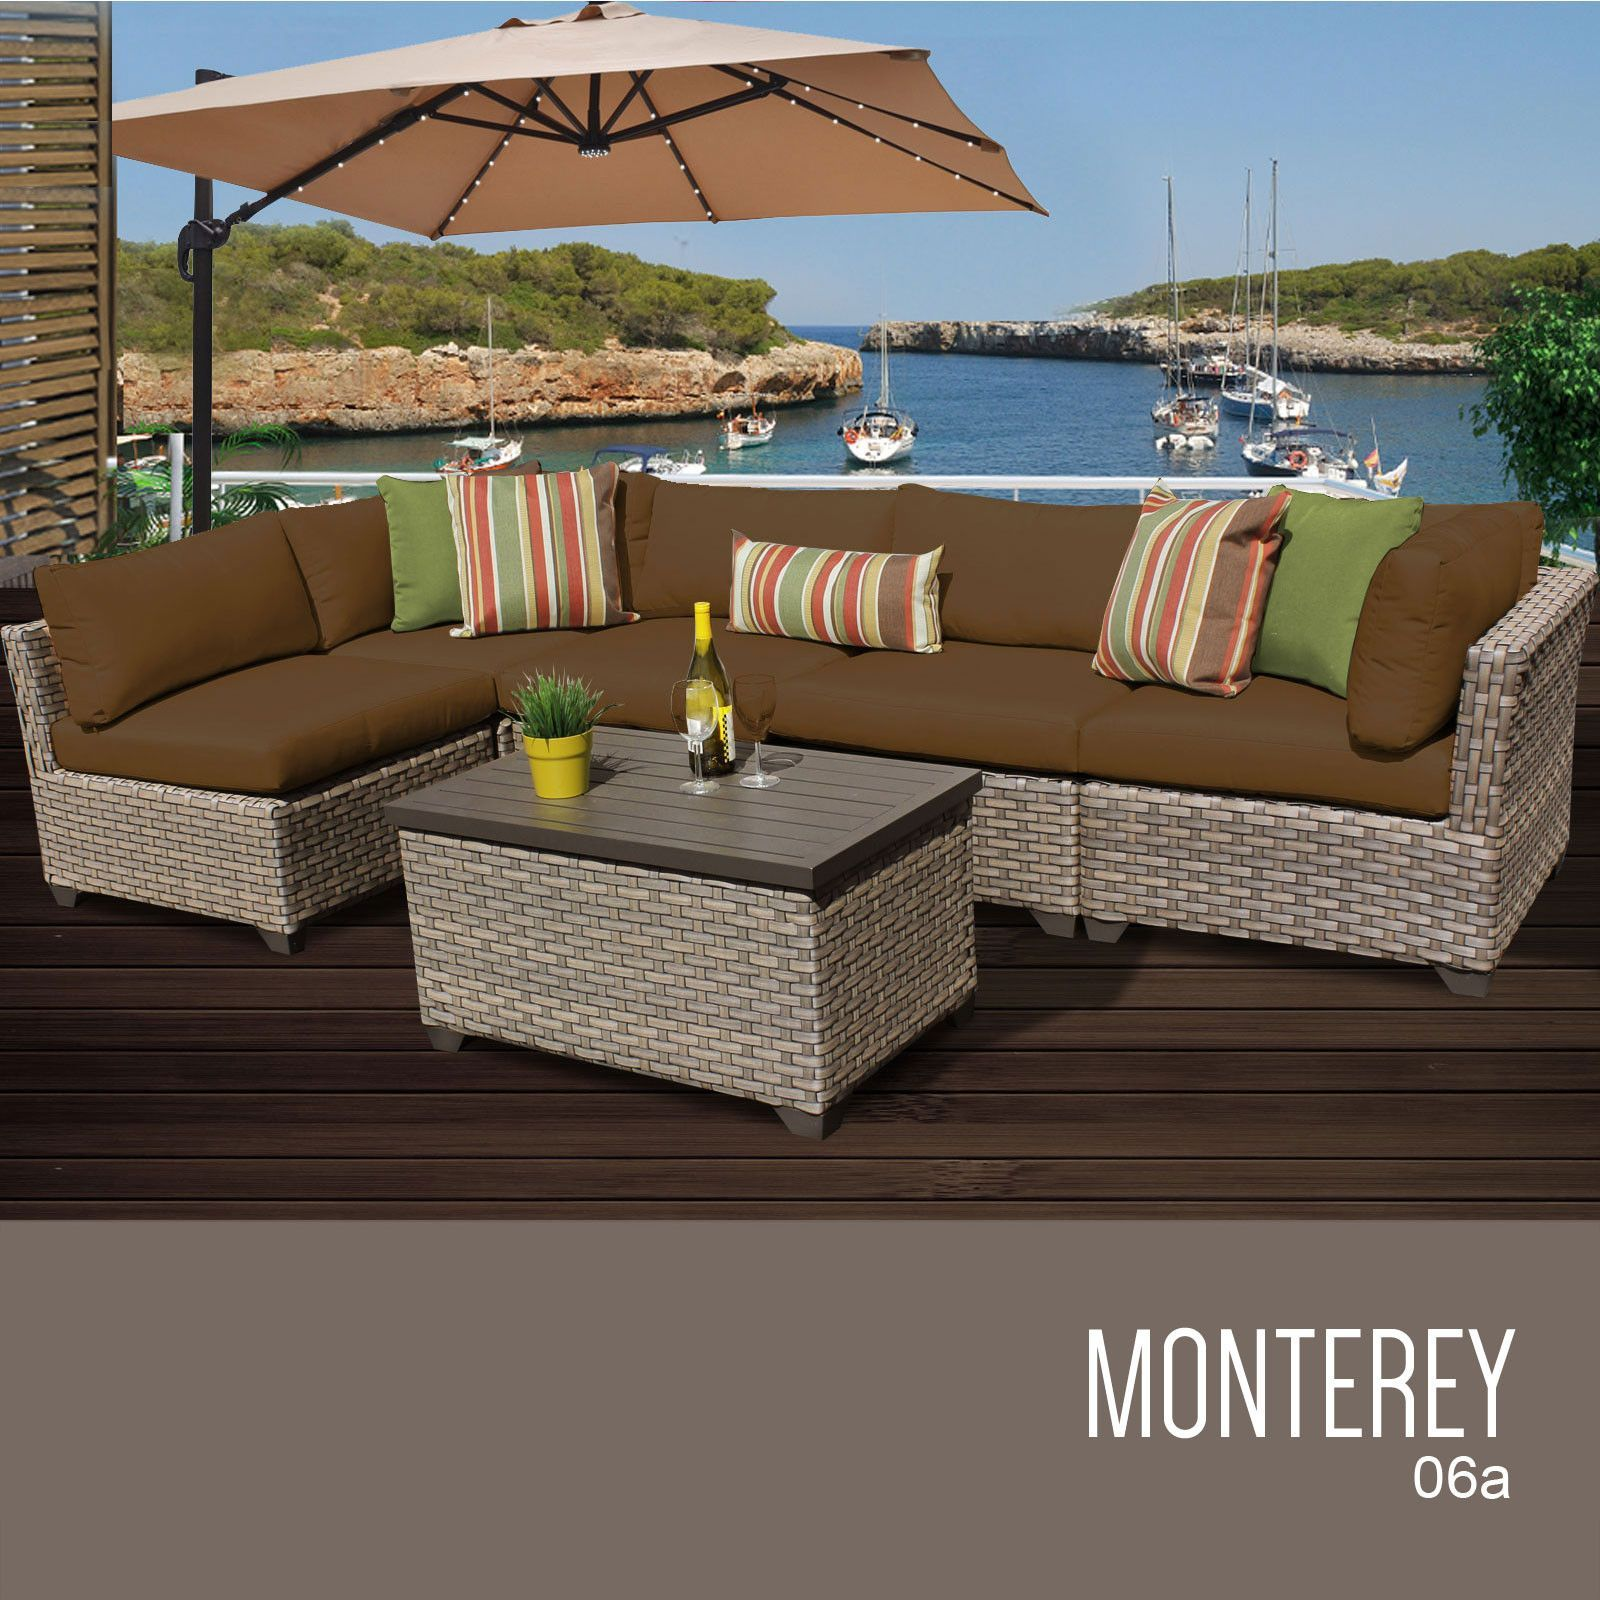 Monterey 6 Piece Outdoor Wicker Patio Furniture Set 06a at